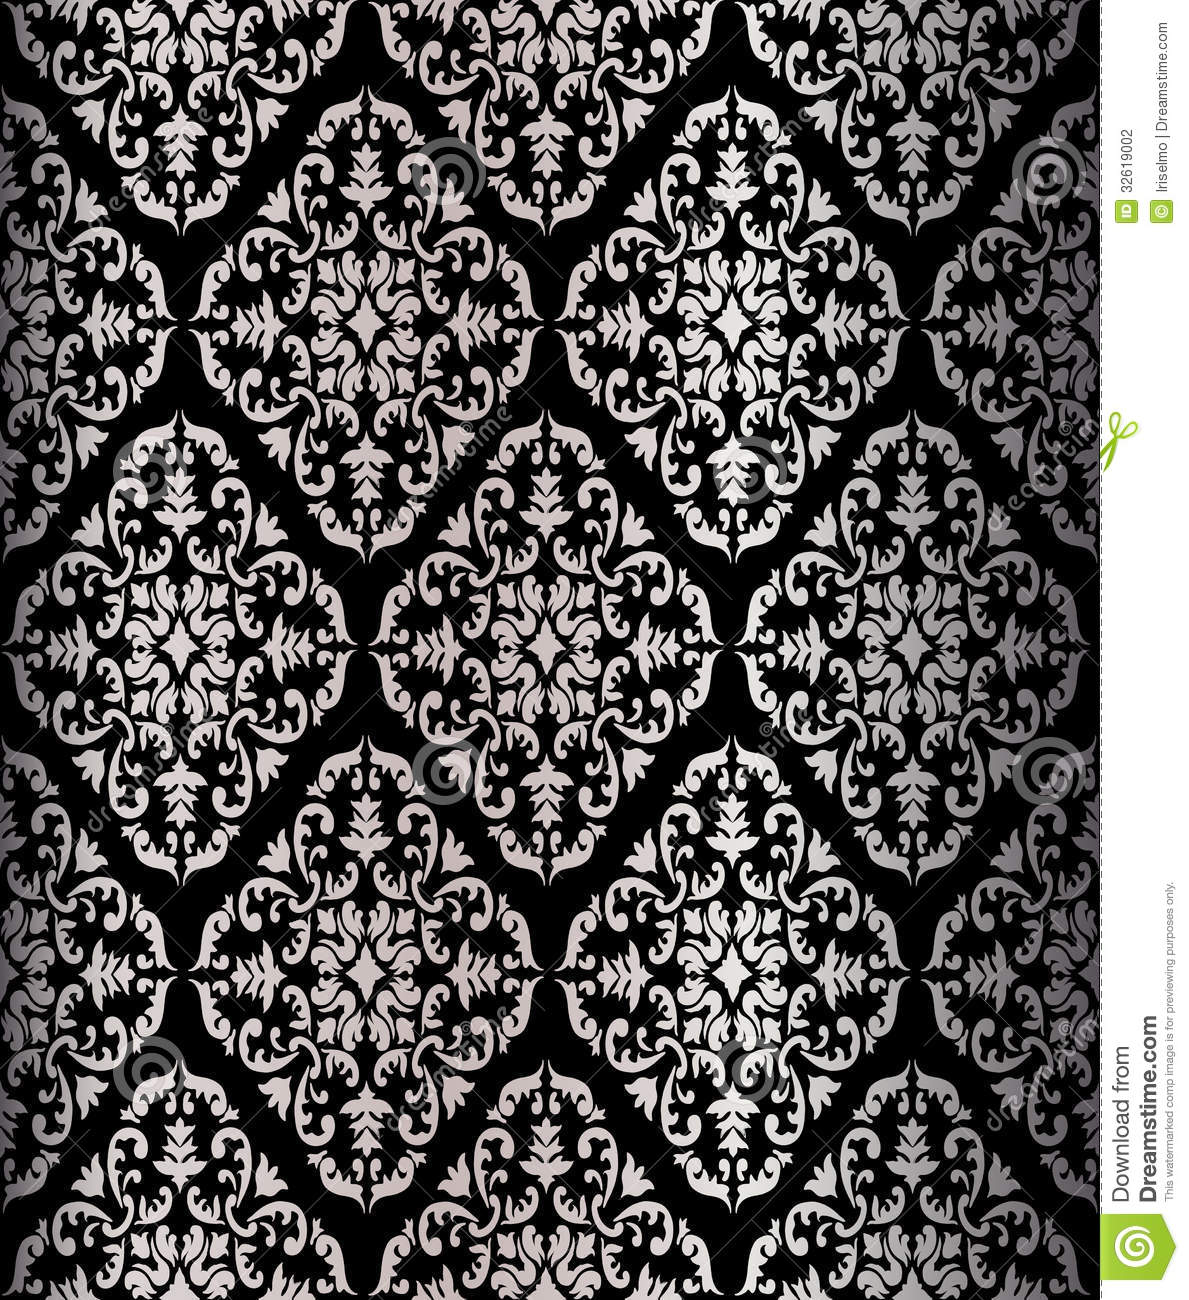 Cute Lace Wallpaper Barocco Seamless Pattern Stock Photography Image 32619002